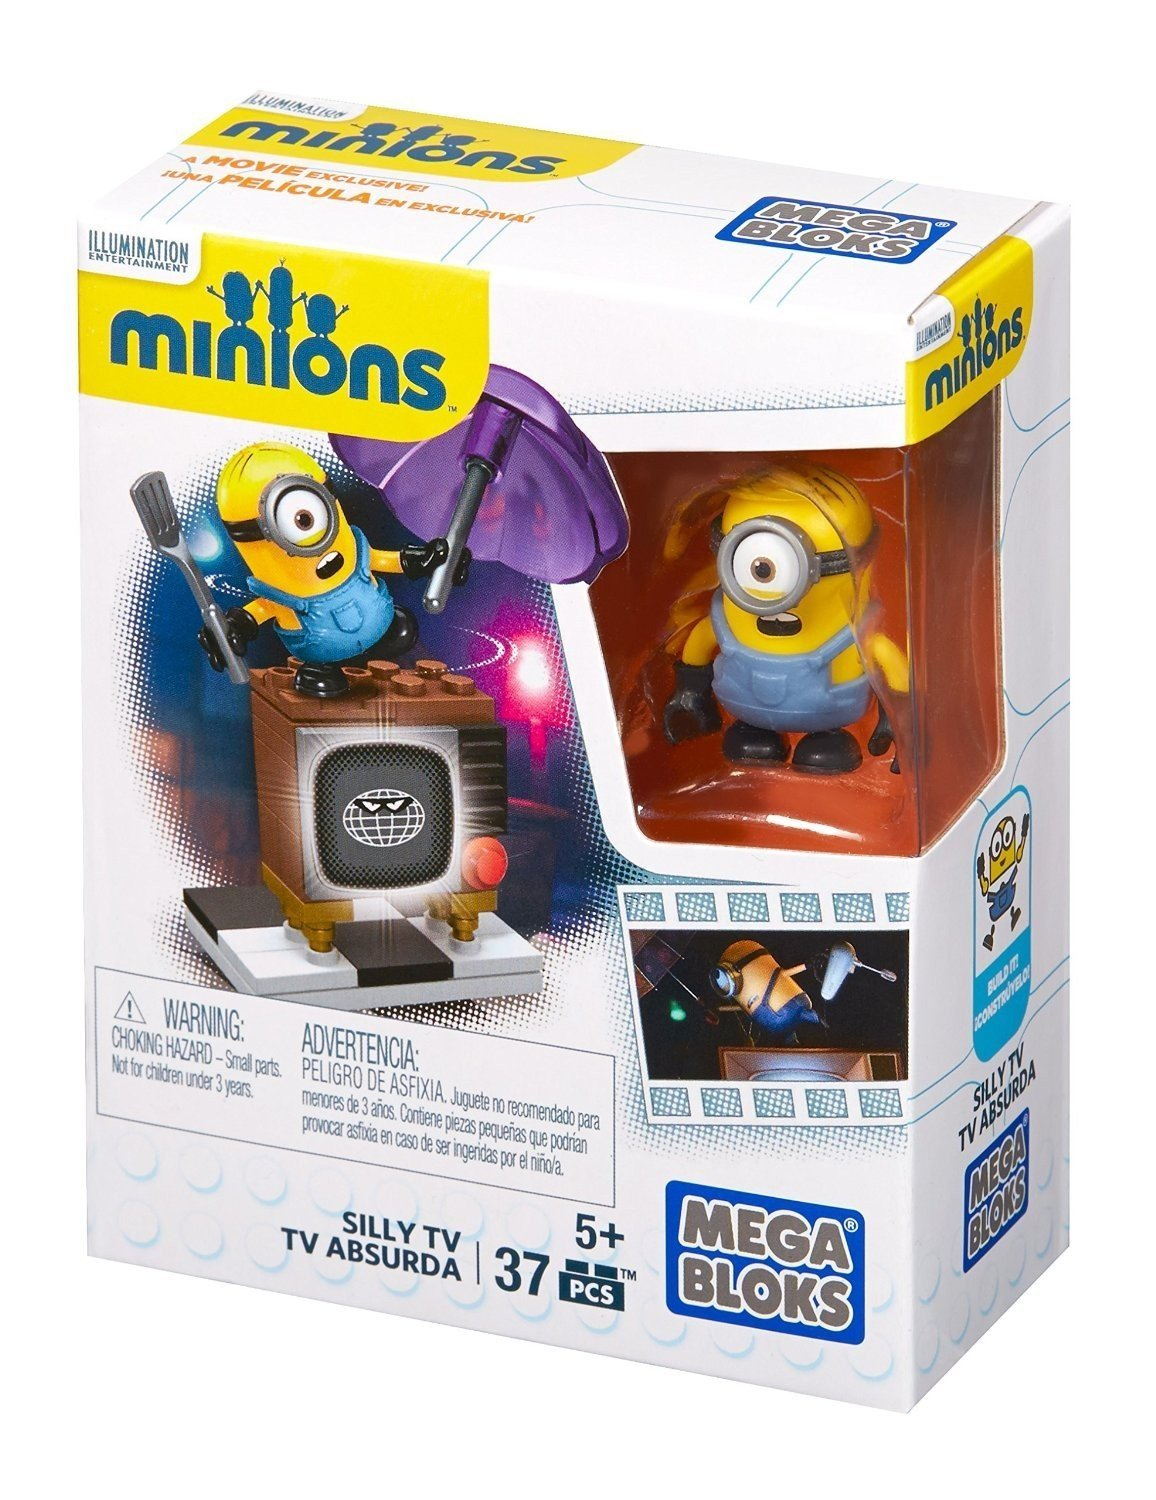 MEGA BLOKS CNF49 Minions - Silly TV